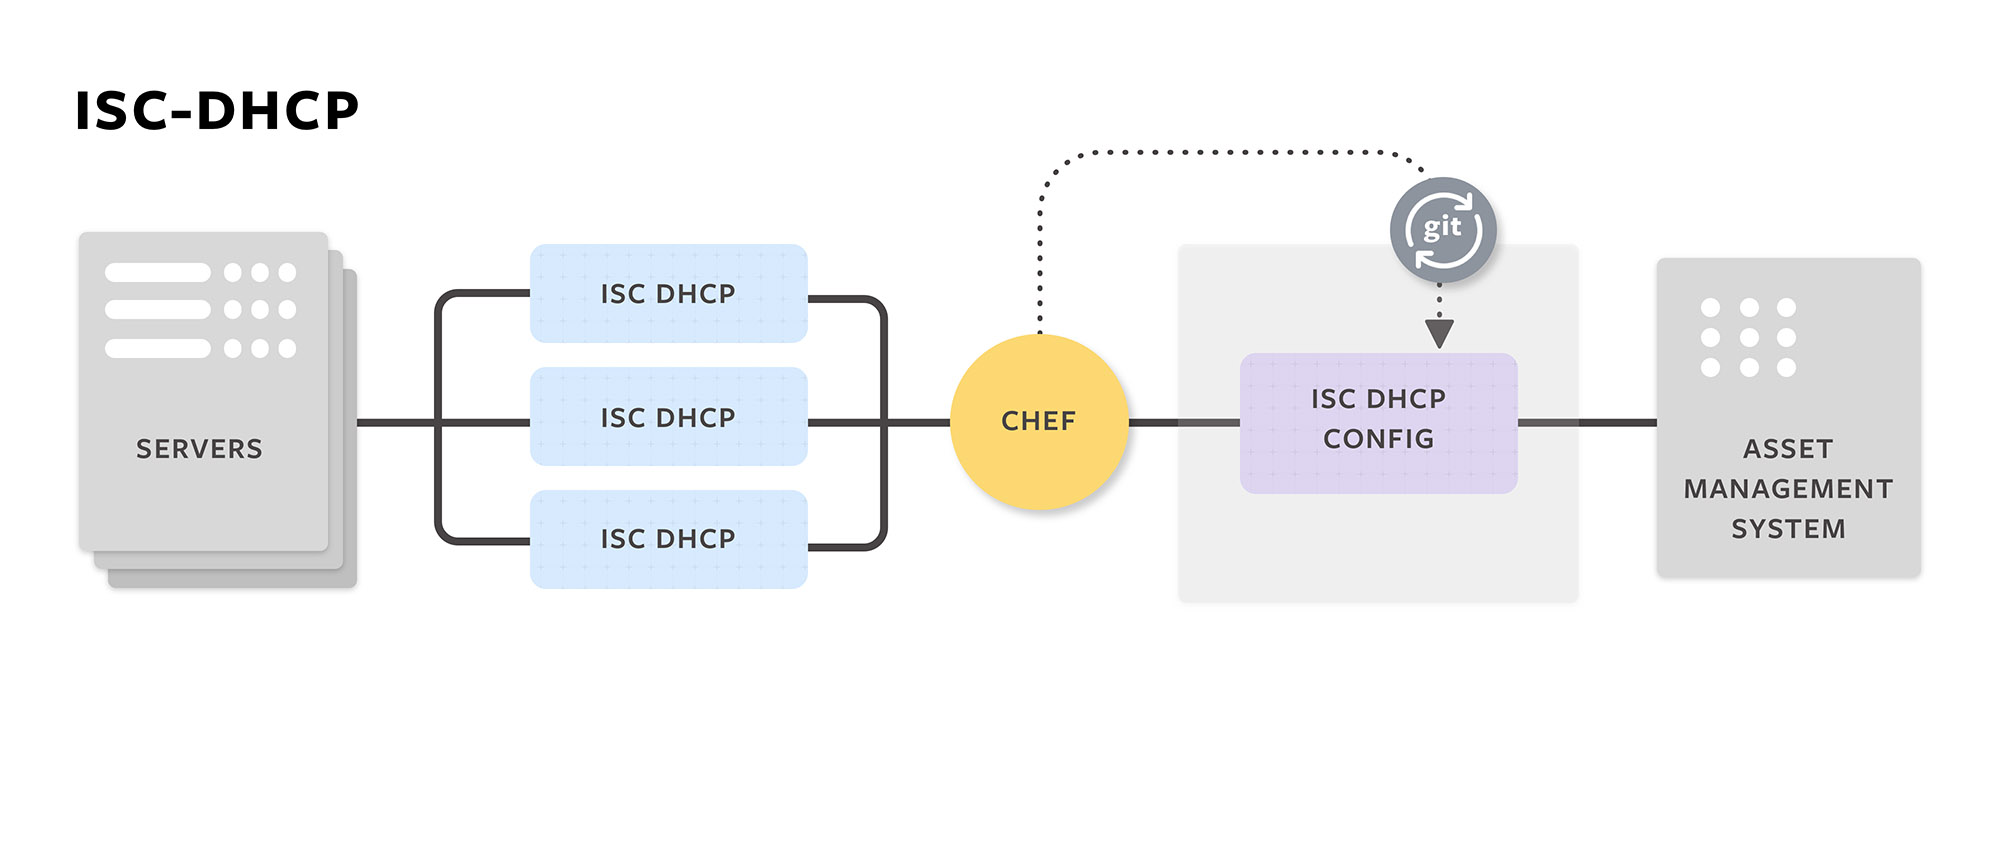 ISC-DHCP